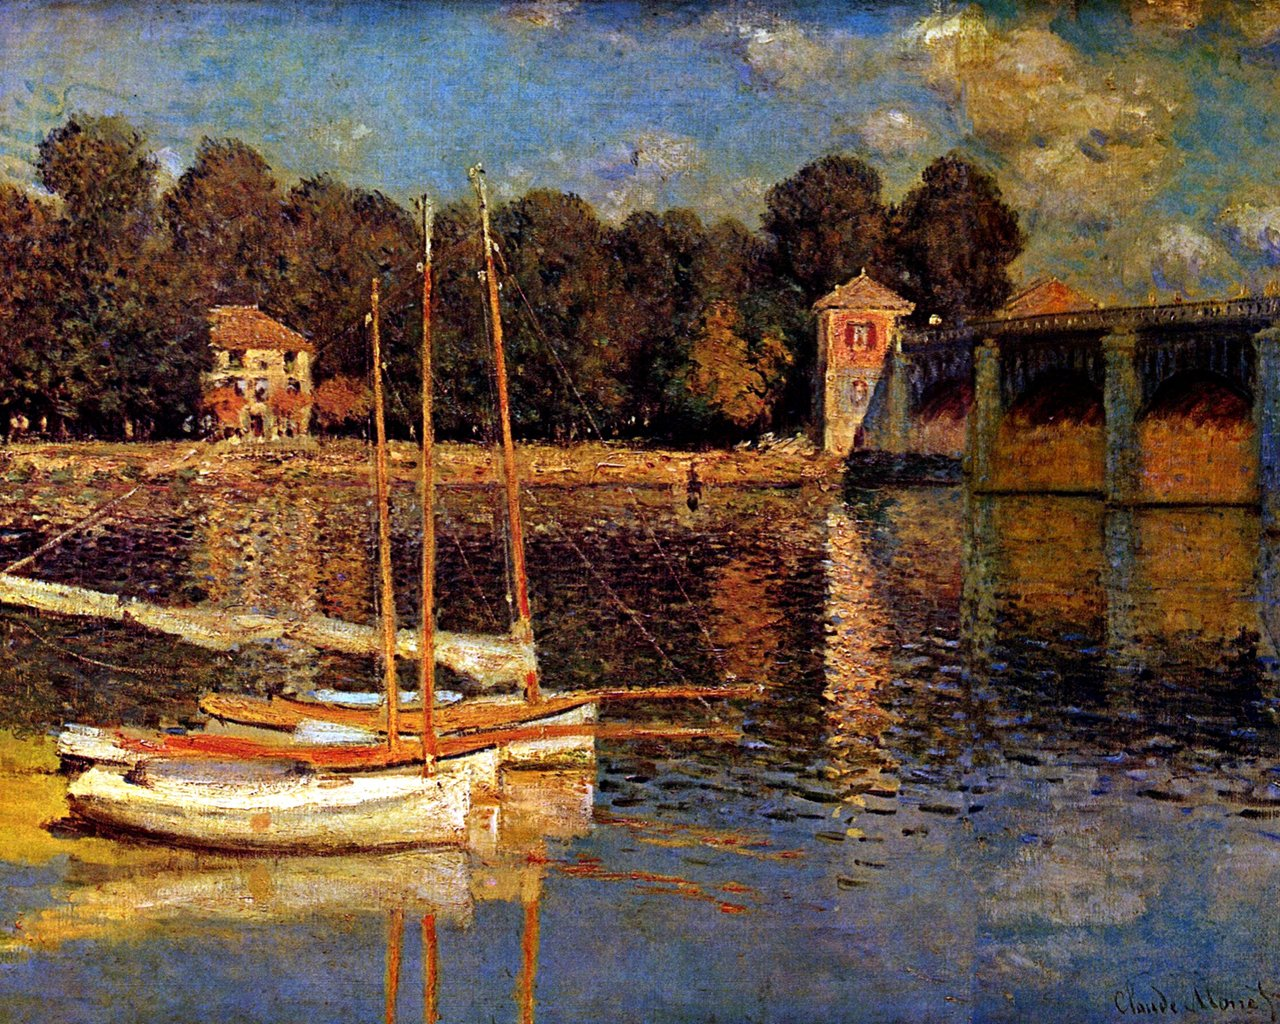 Western Paintings French impressionist painting Claude Monet 1280x1024